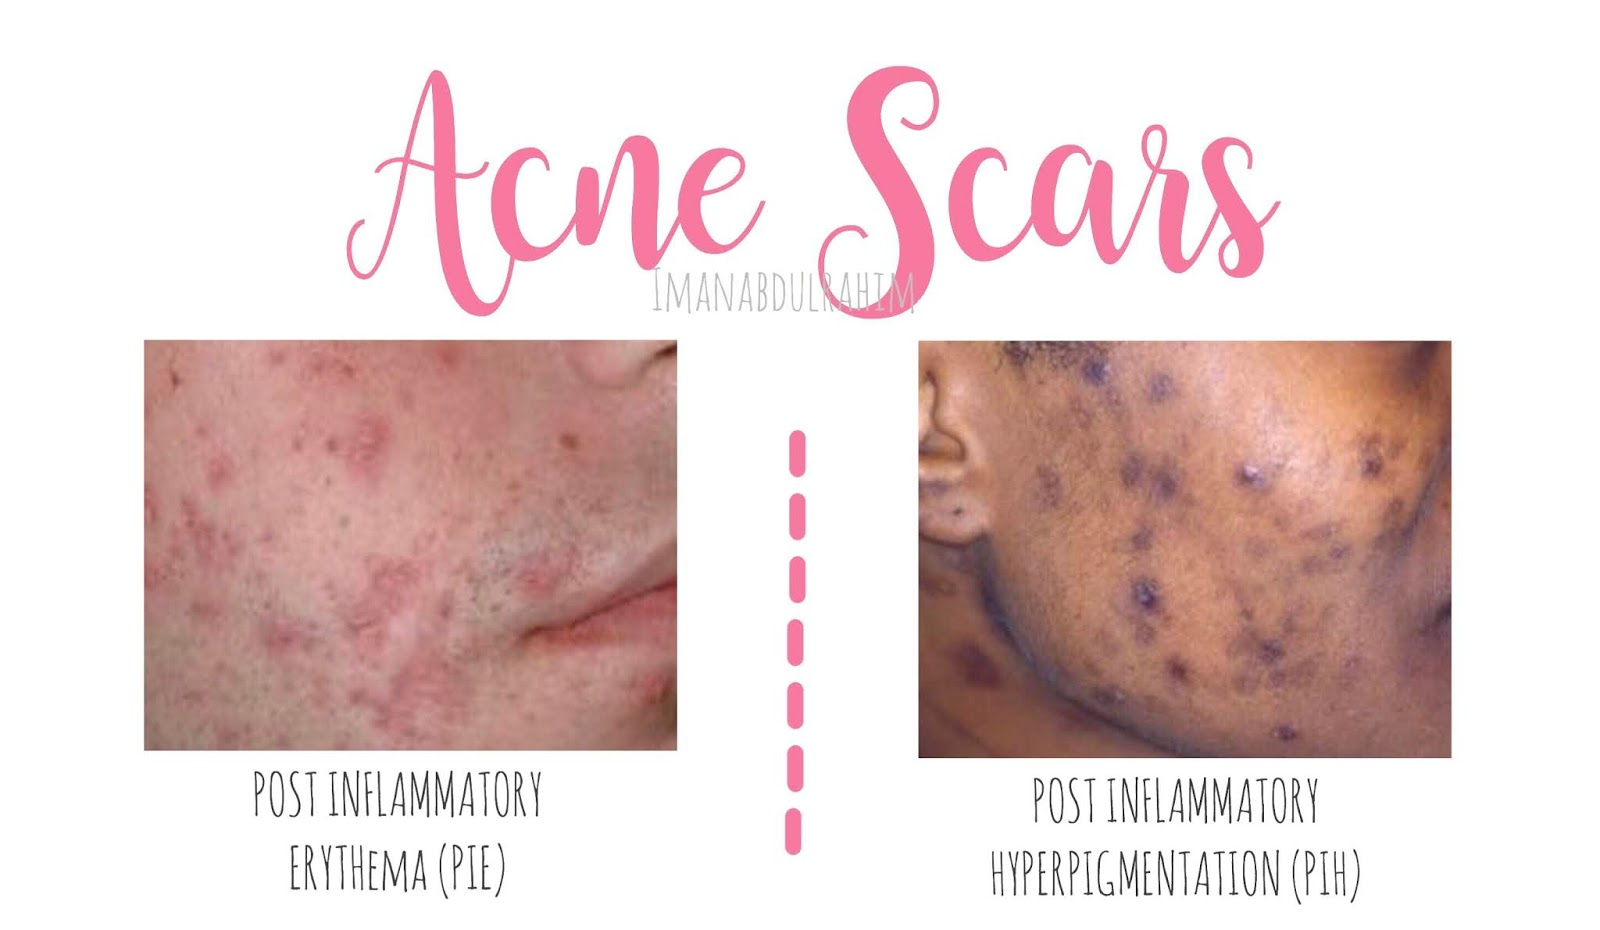 How To Reduce Acne Scars Iman Abdul Rahim